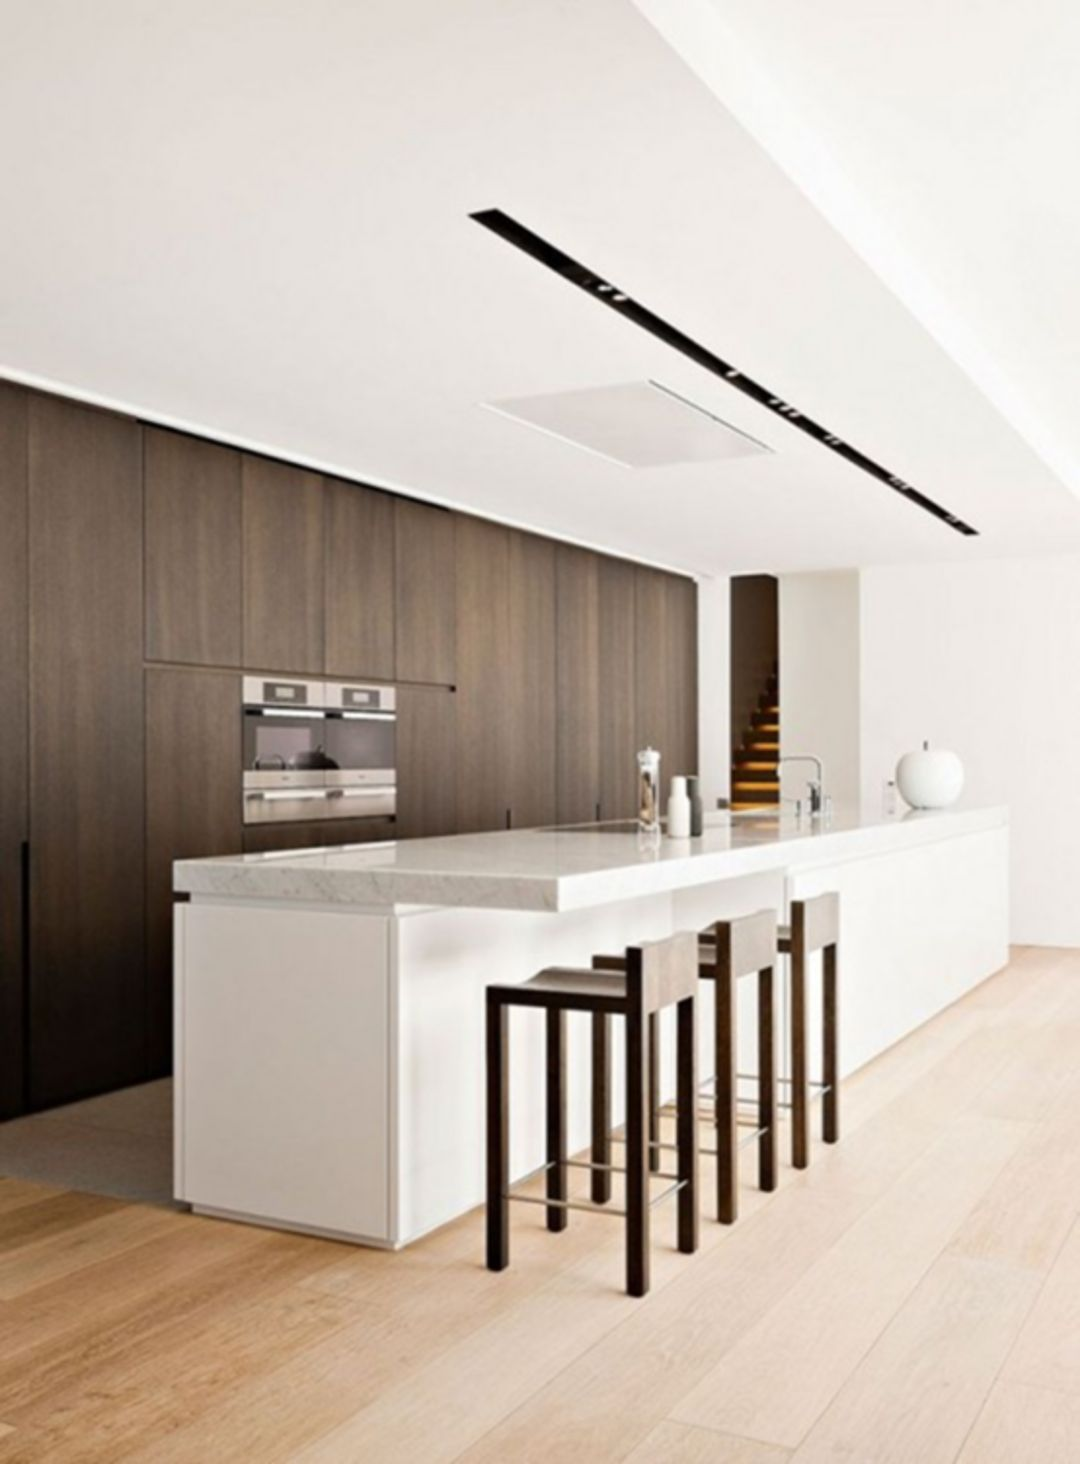 10 Kitchen And Home Decor Items Every 20 Something Needs: 10+ Best Populer Kitchen Design Ideas For Your Home